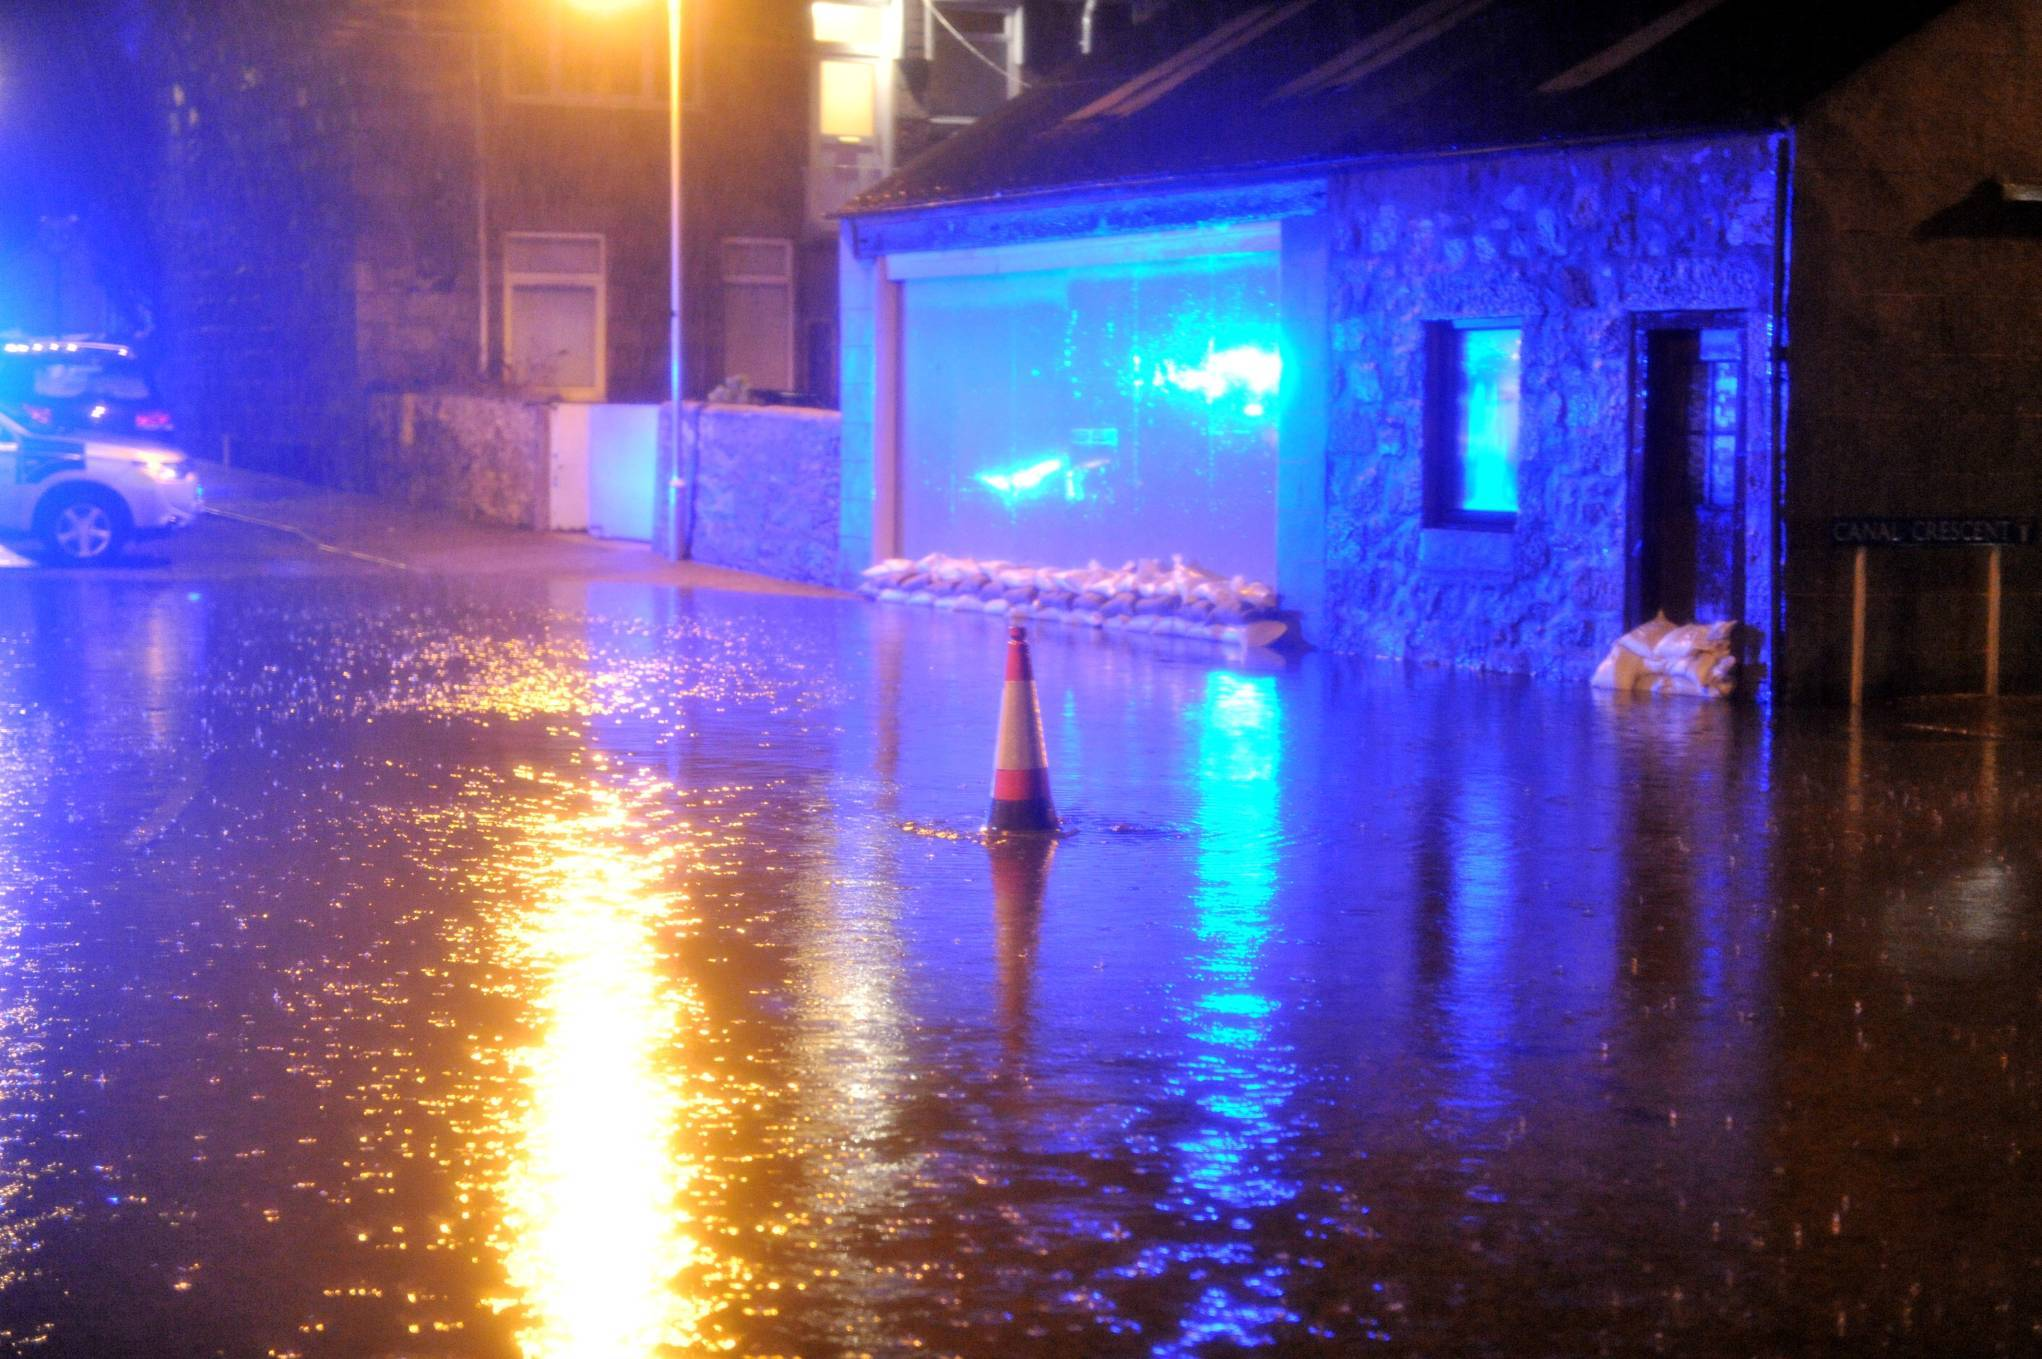 There remains a risk of ongoing disruption from flooding